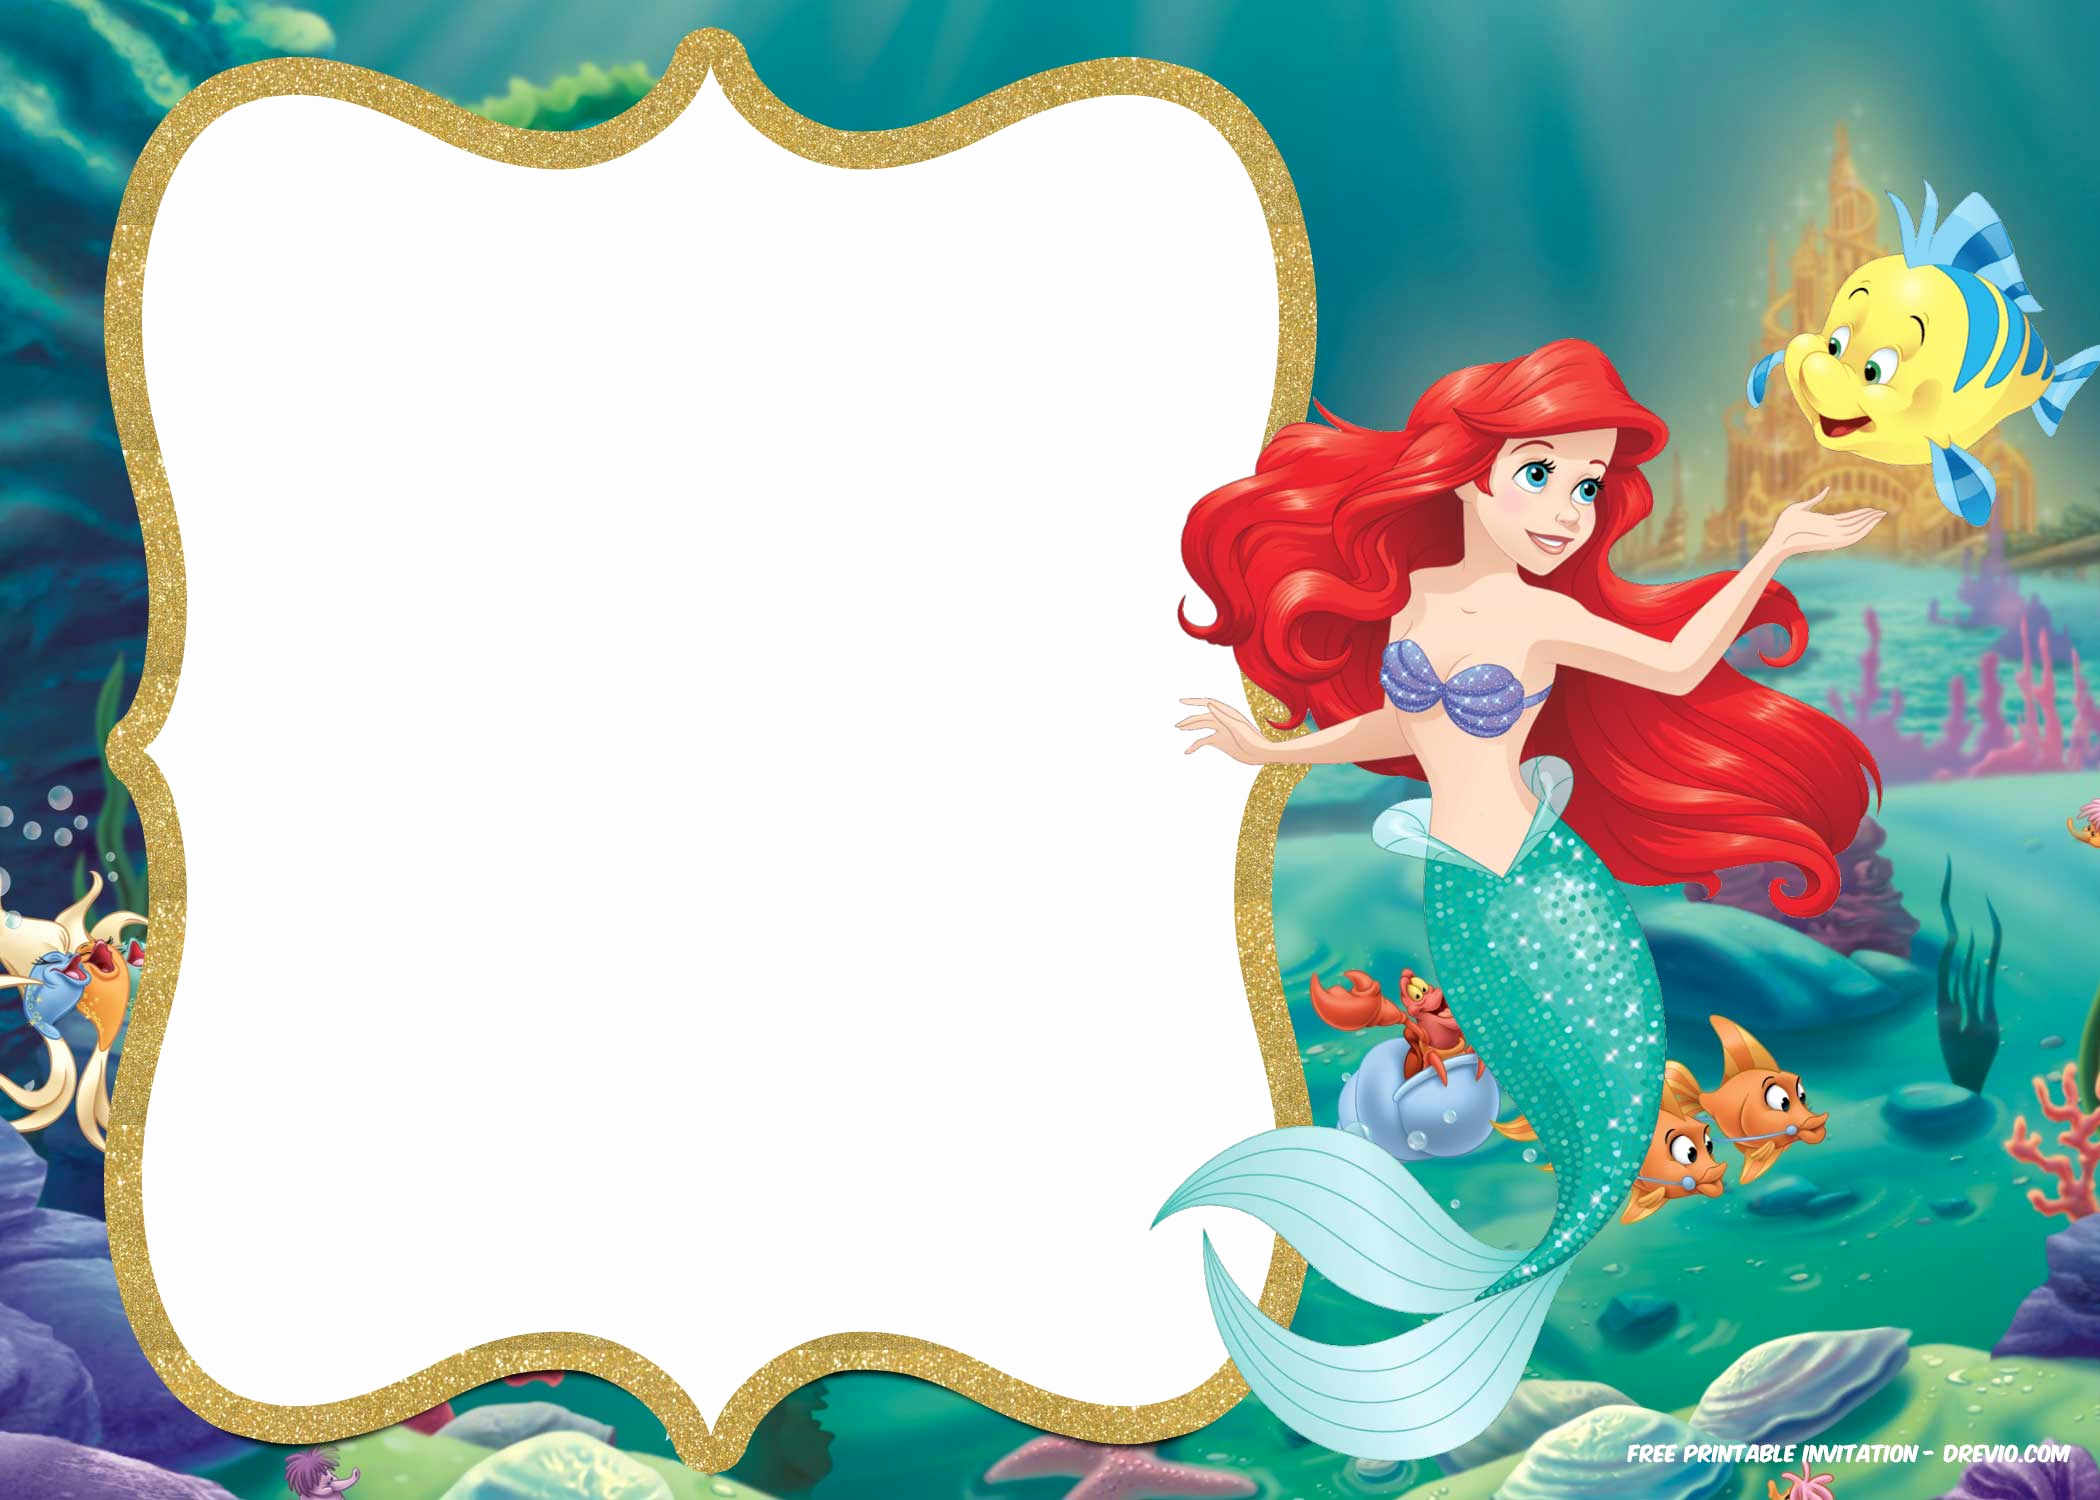 Little Mermaid Birthday Invitation Template New Free Printable Ariel Little Mermaid Invitation Template